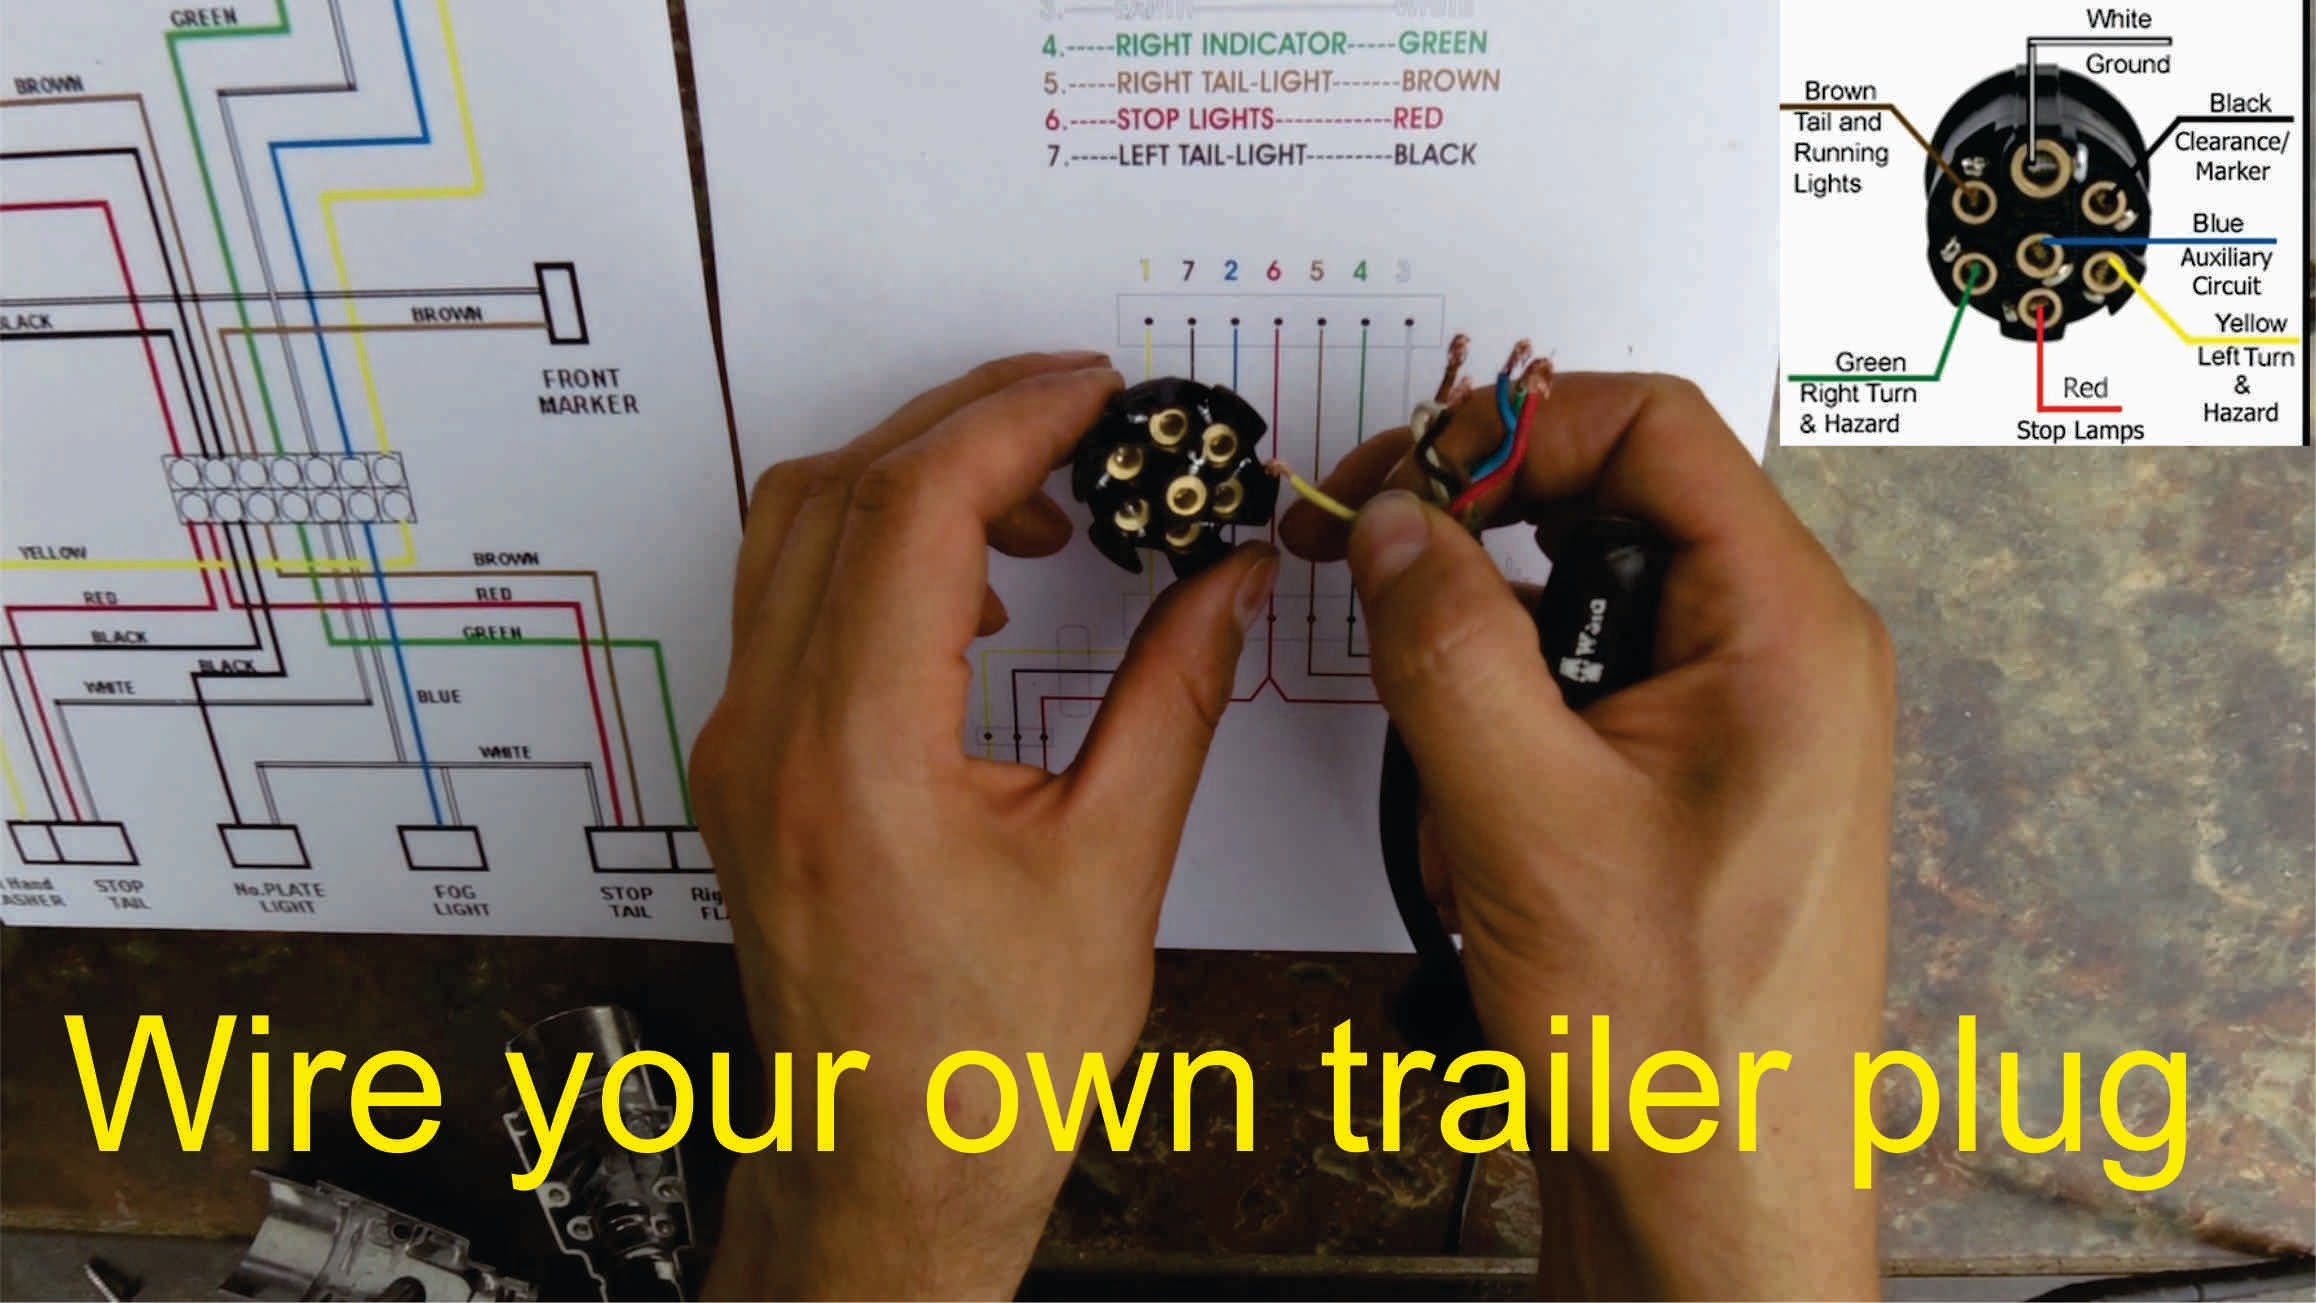 7 Pin To 4 Pin Wiring Diagram | Manual E-Books - 4 Pin To 7 Pin Trailer Adapter Wiring Diagram